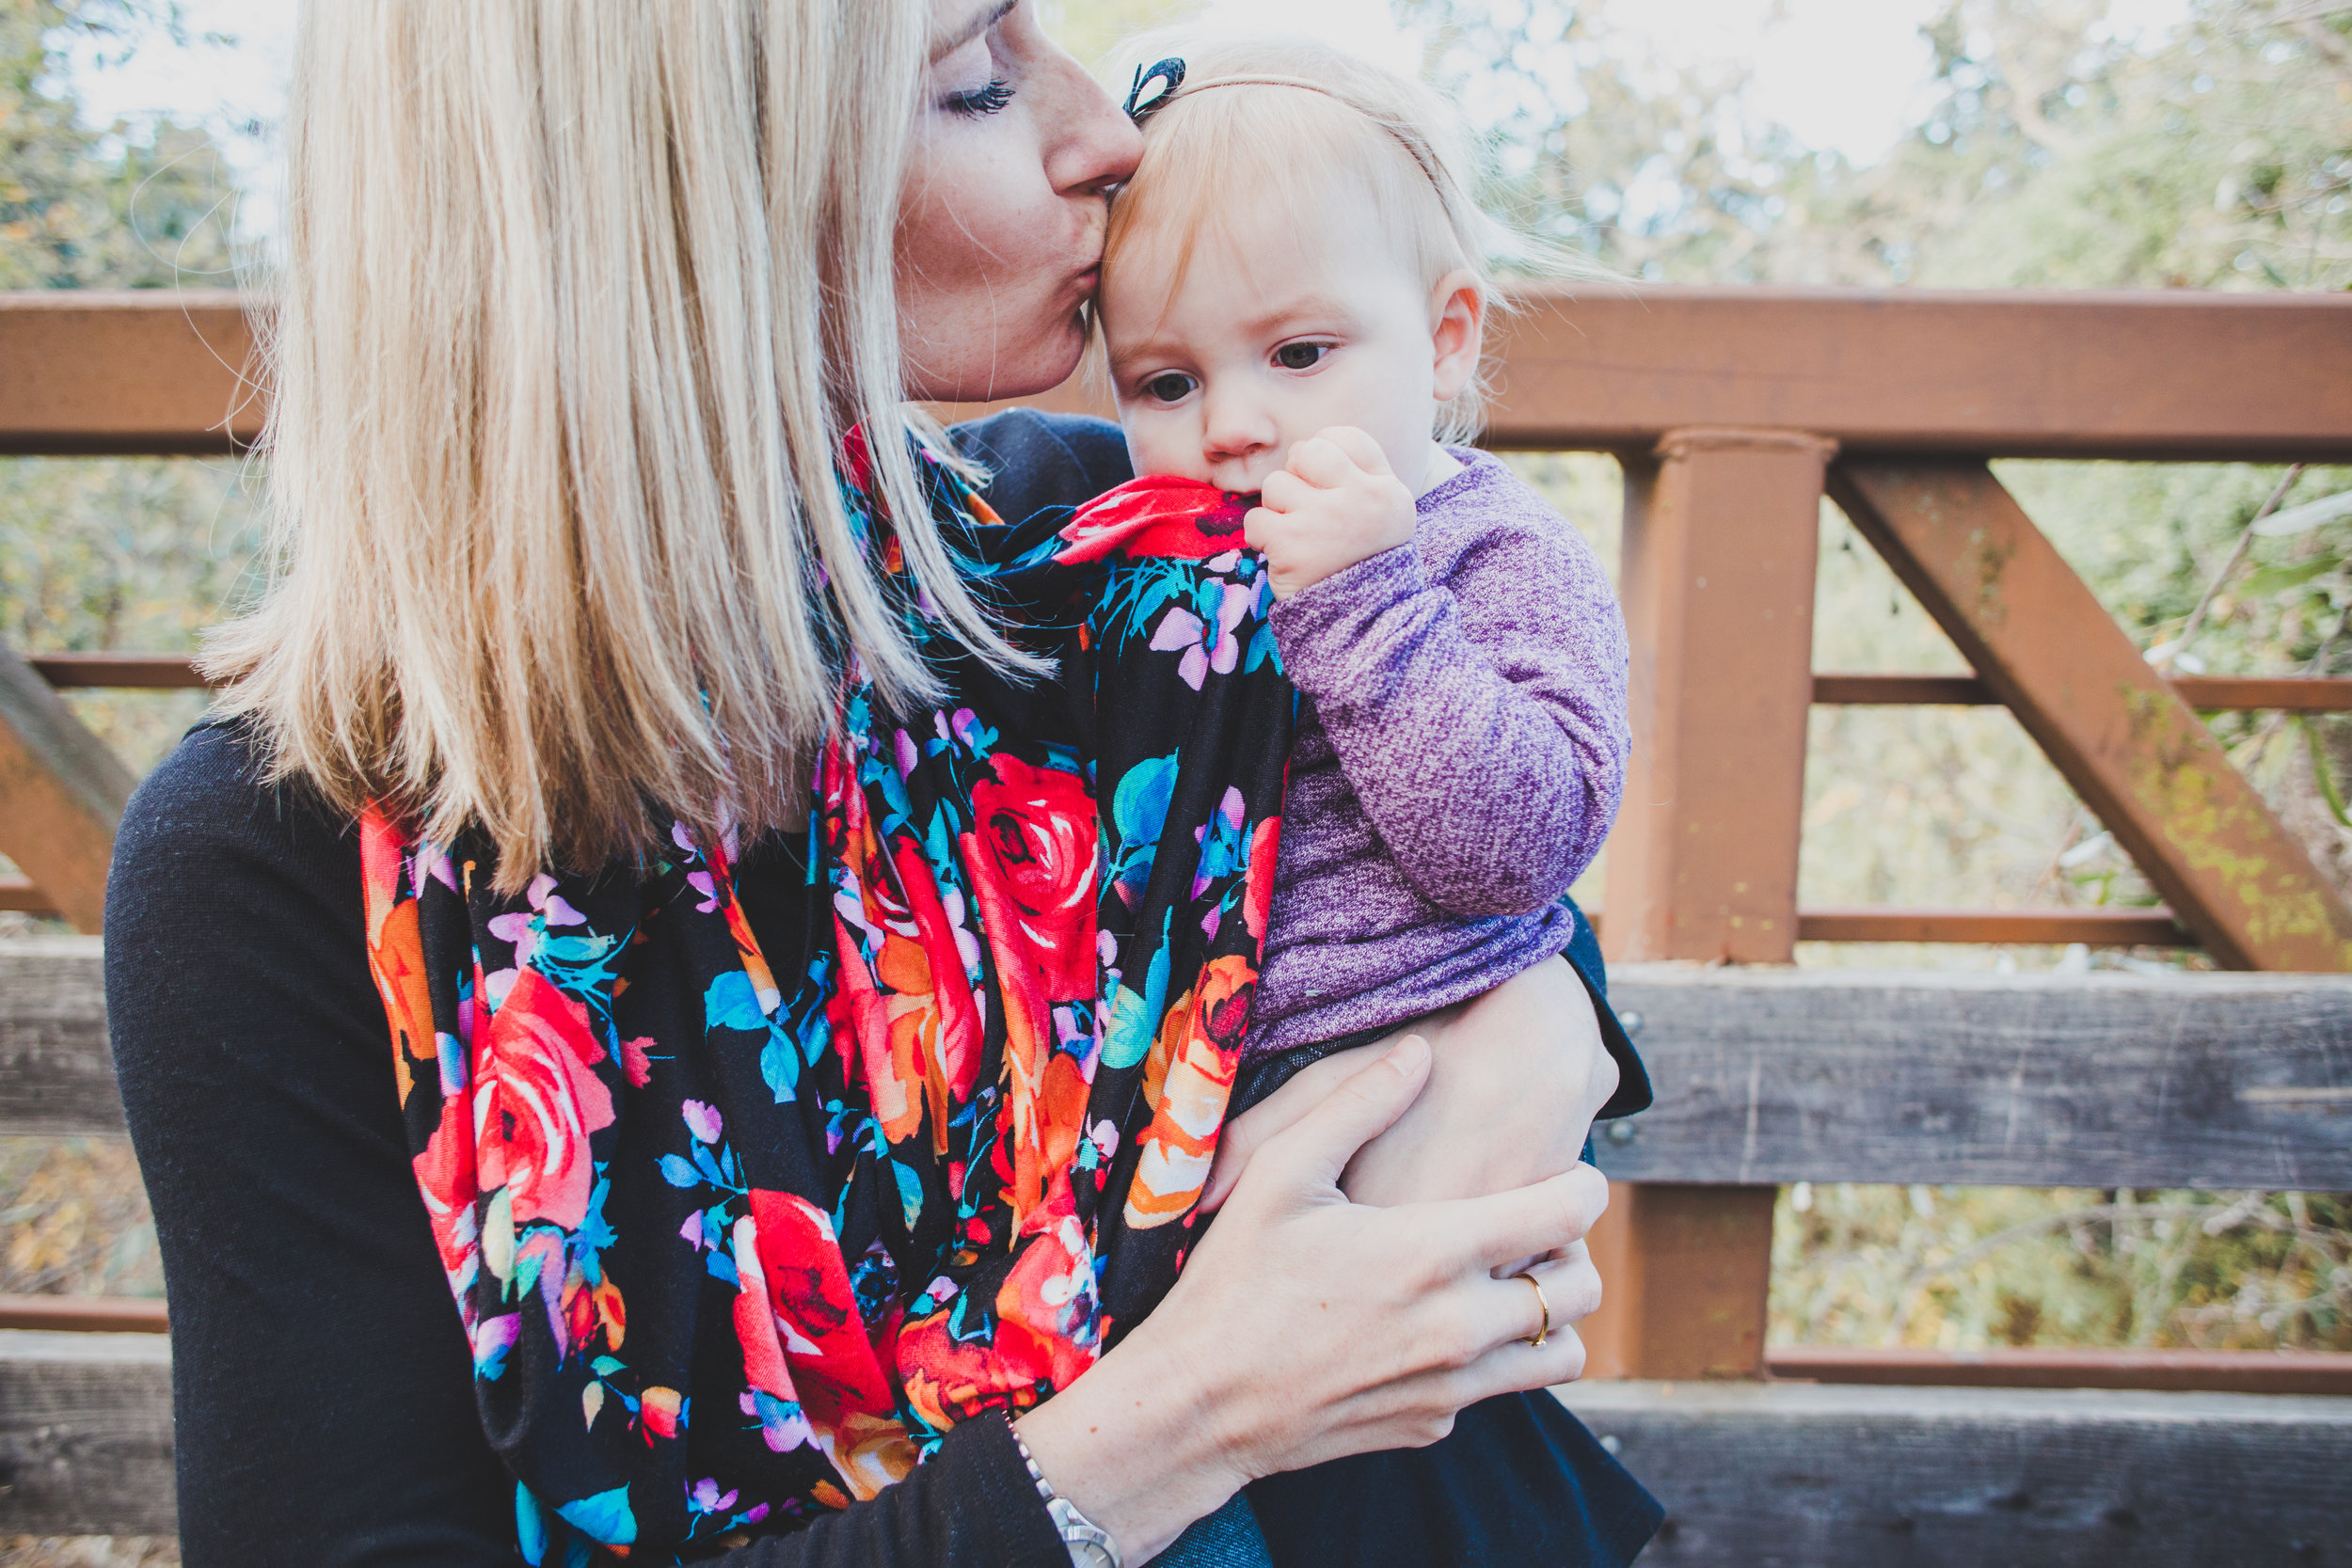 TRUST THOSE MAMA INSTINCTS - Should I take my baby to urgent care?